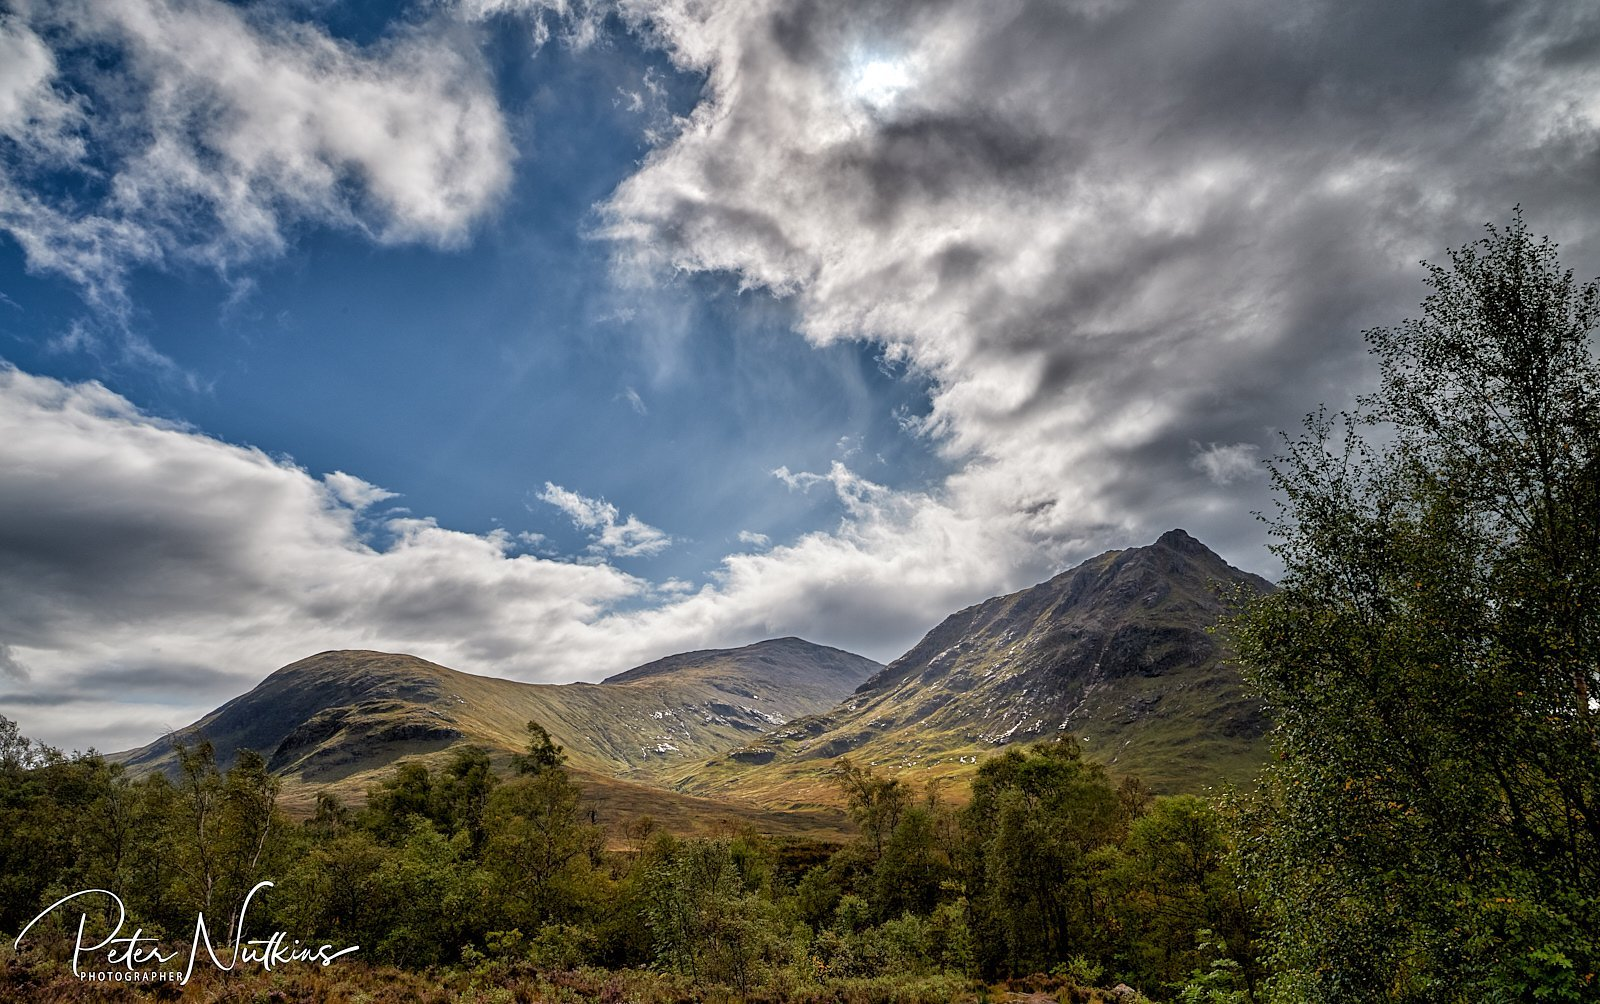 A cloak of sunlight is drawn across the entrance to the glen.